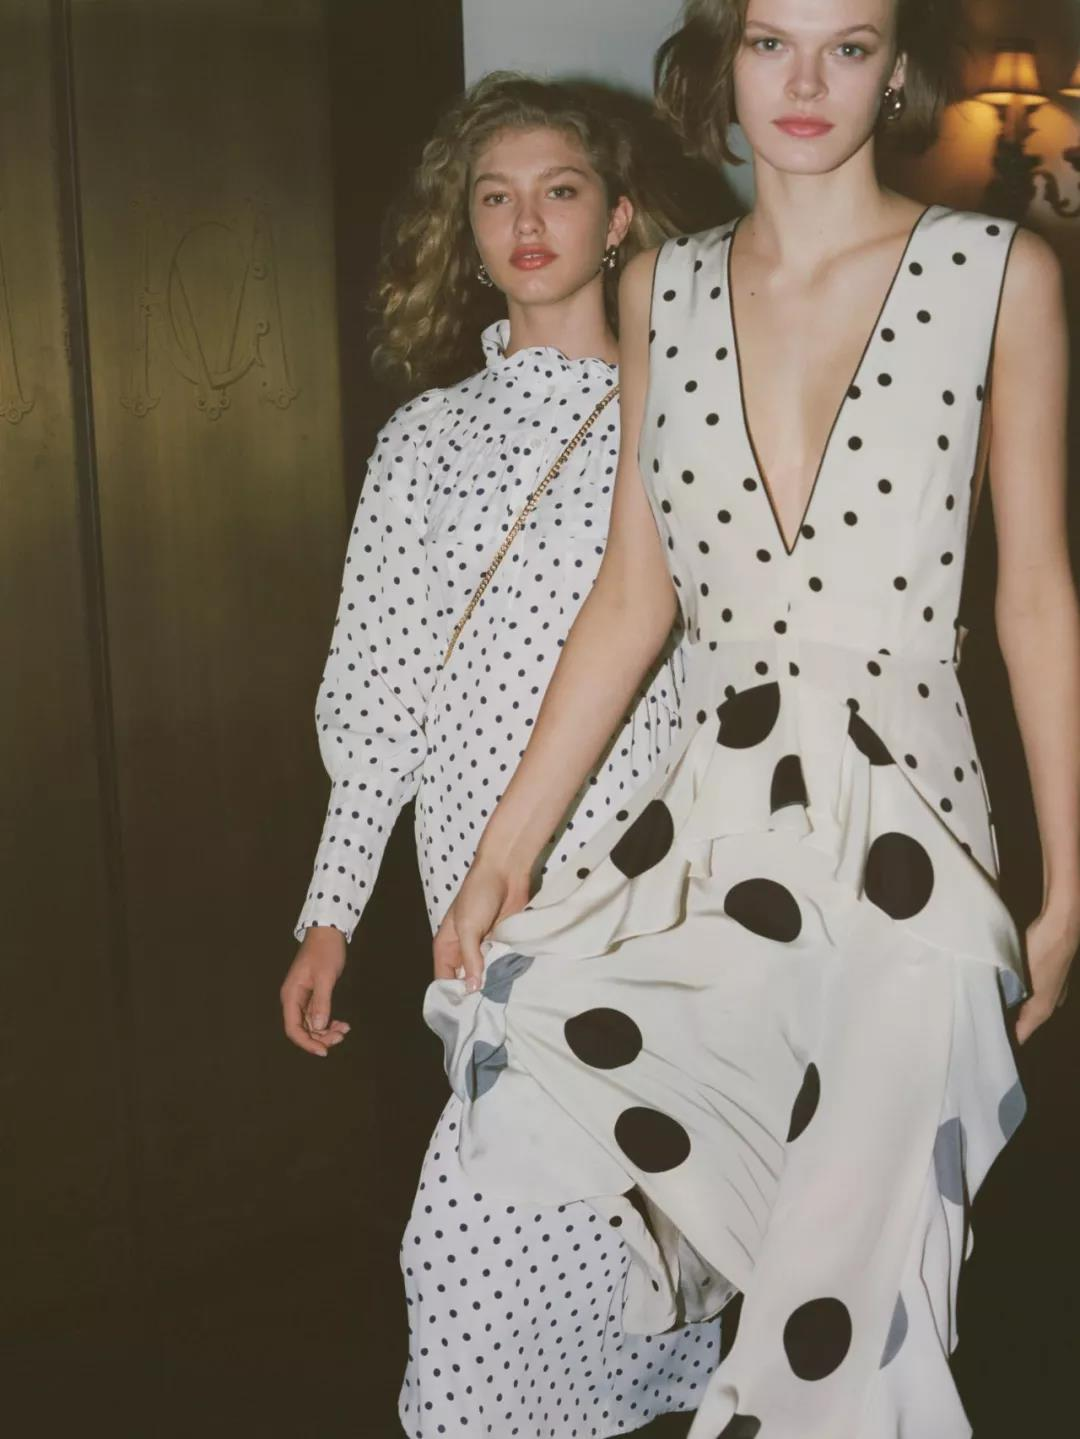 two-girls-wear-white-dresses-with-black-dots